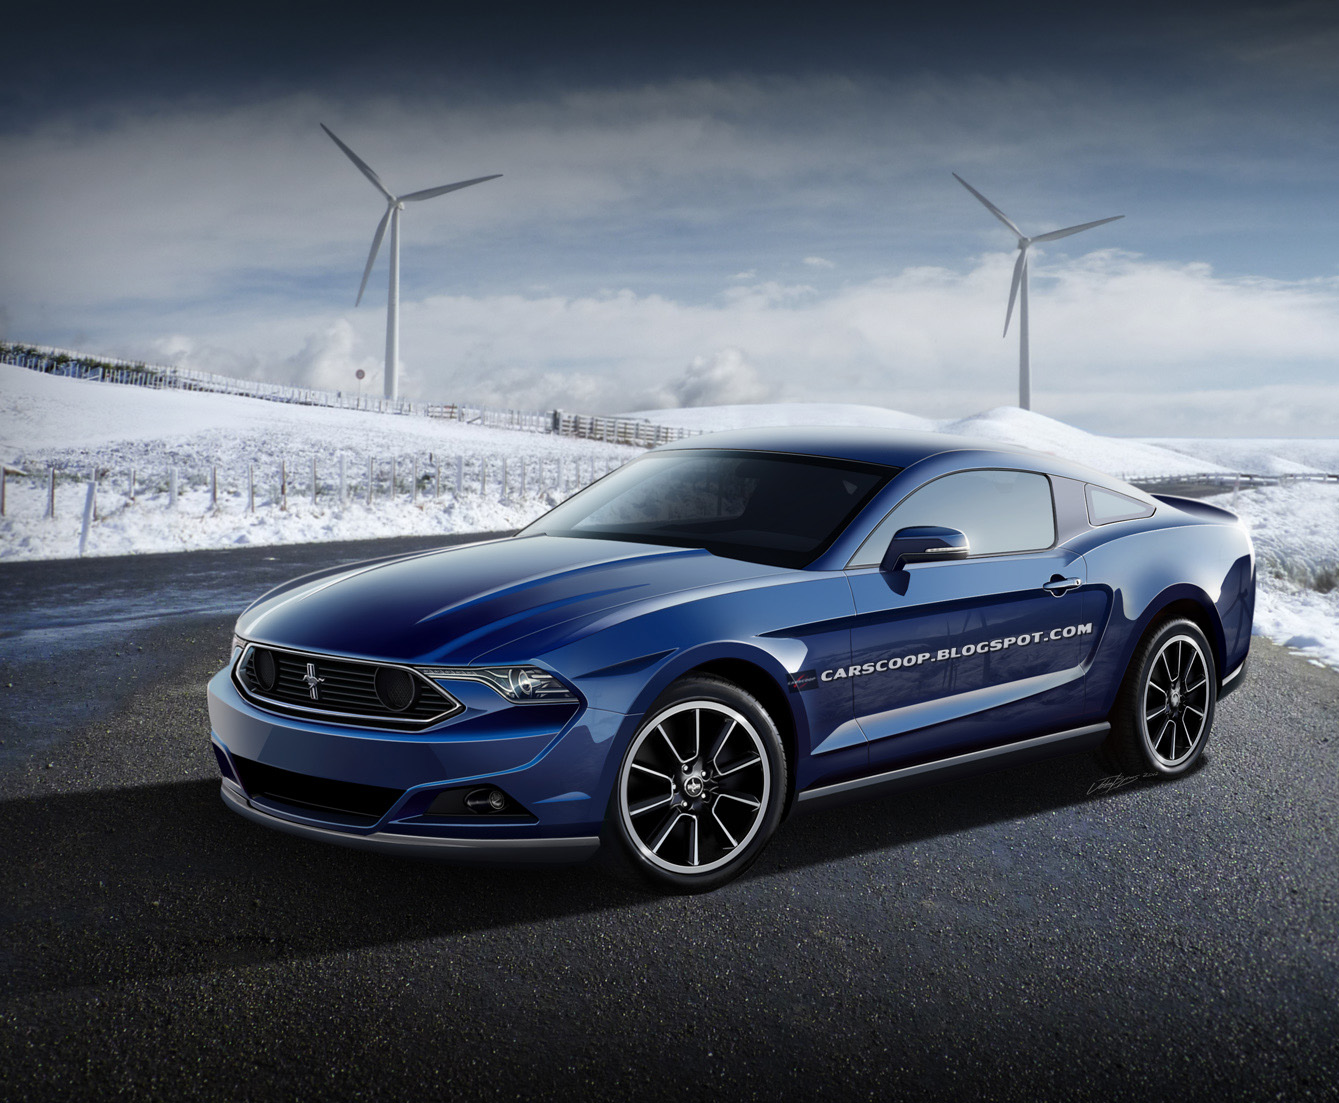 2015 Ford Mustang GT Concept High Resolution Wallpaper Free